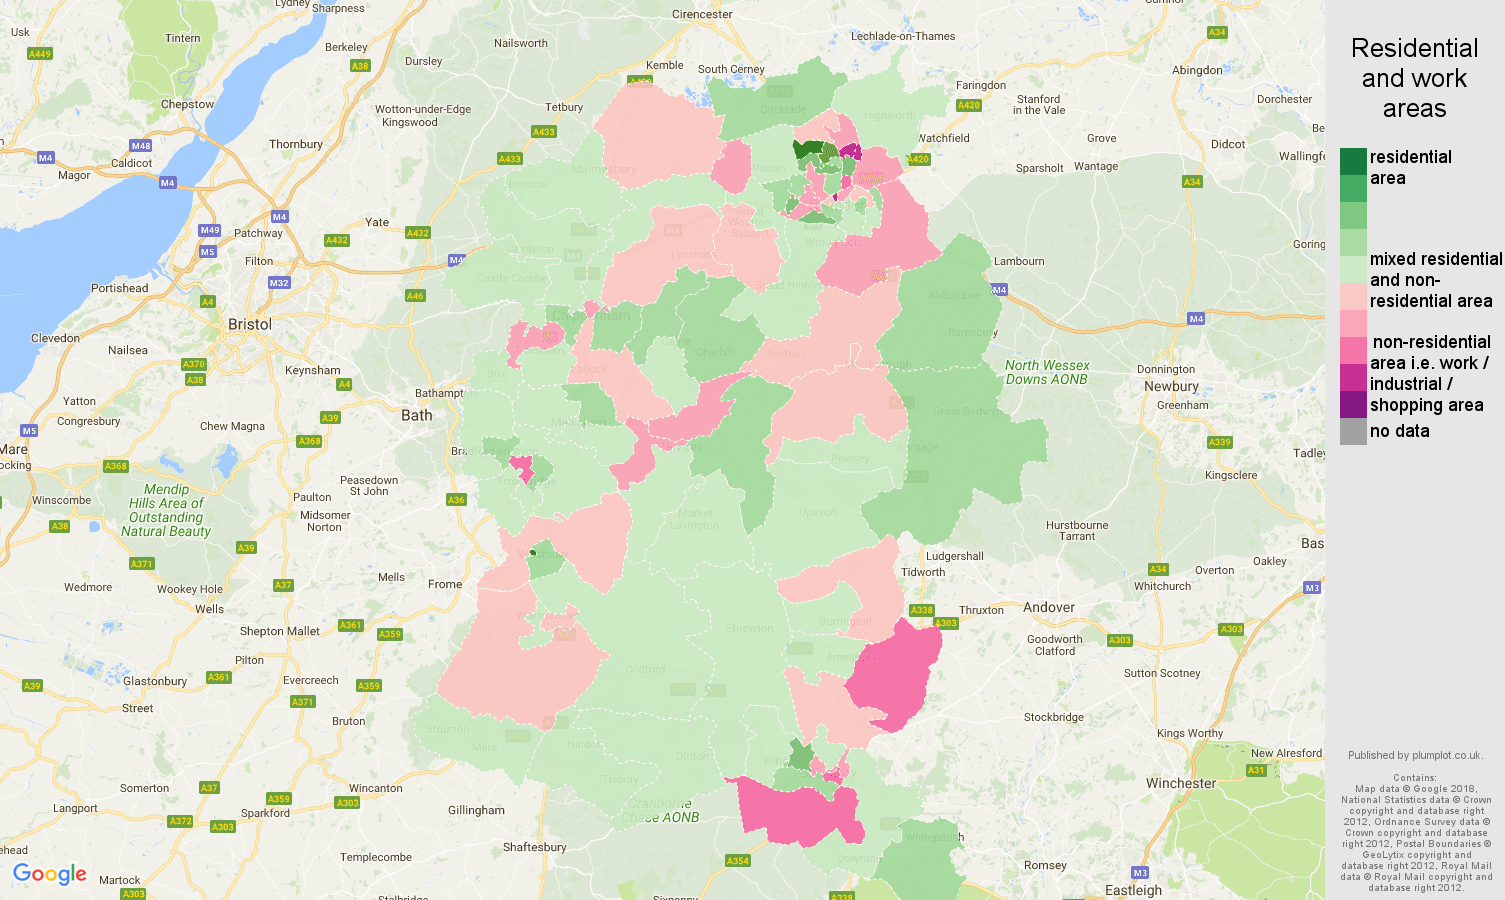 Wiltshire residential areas map